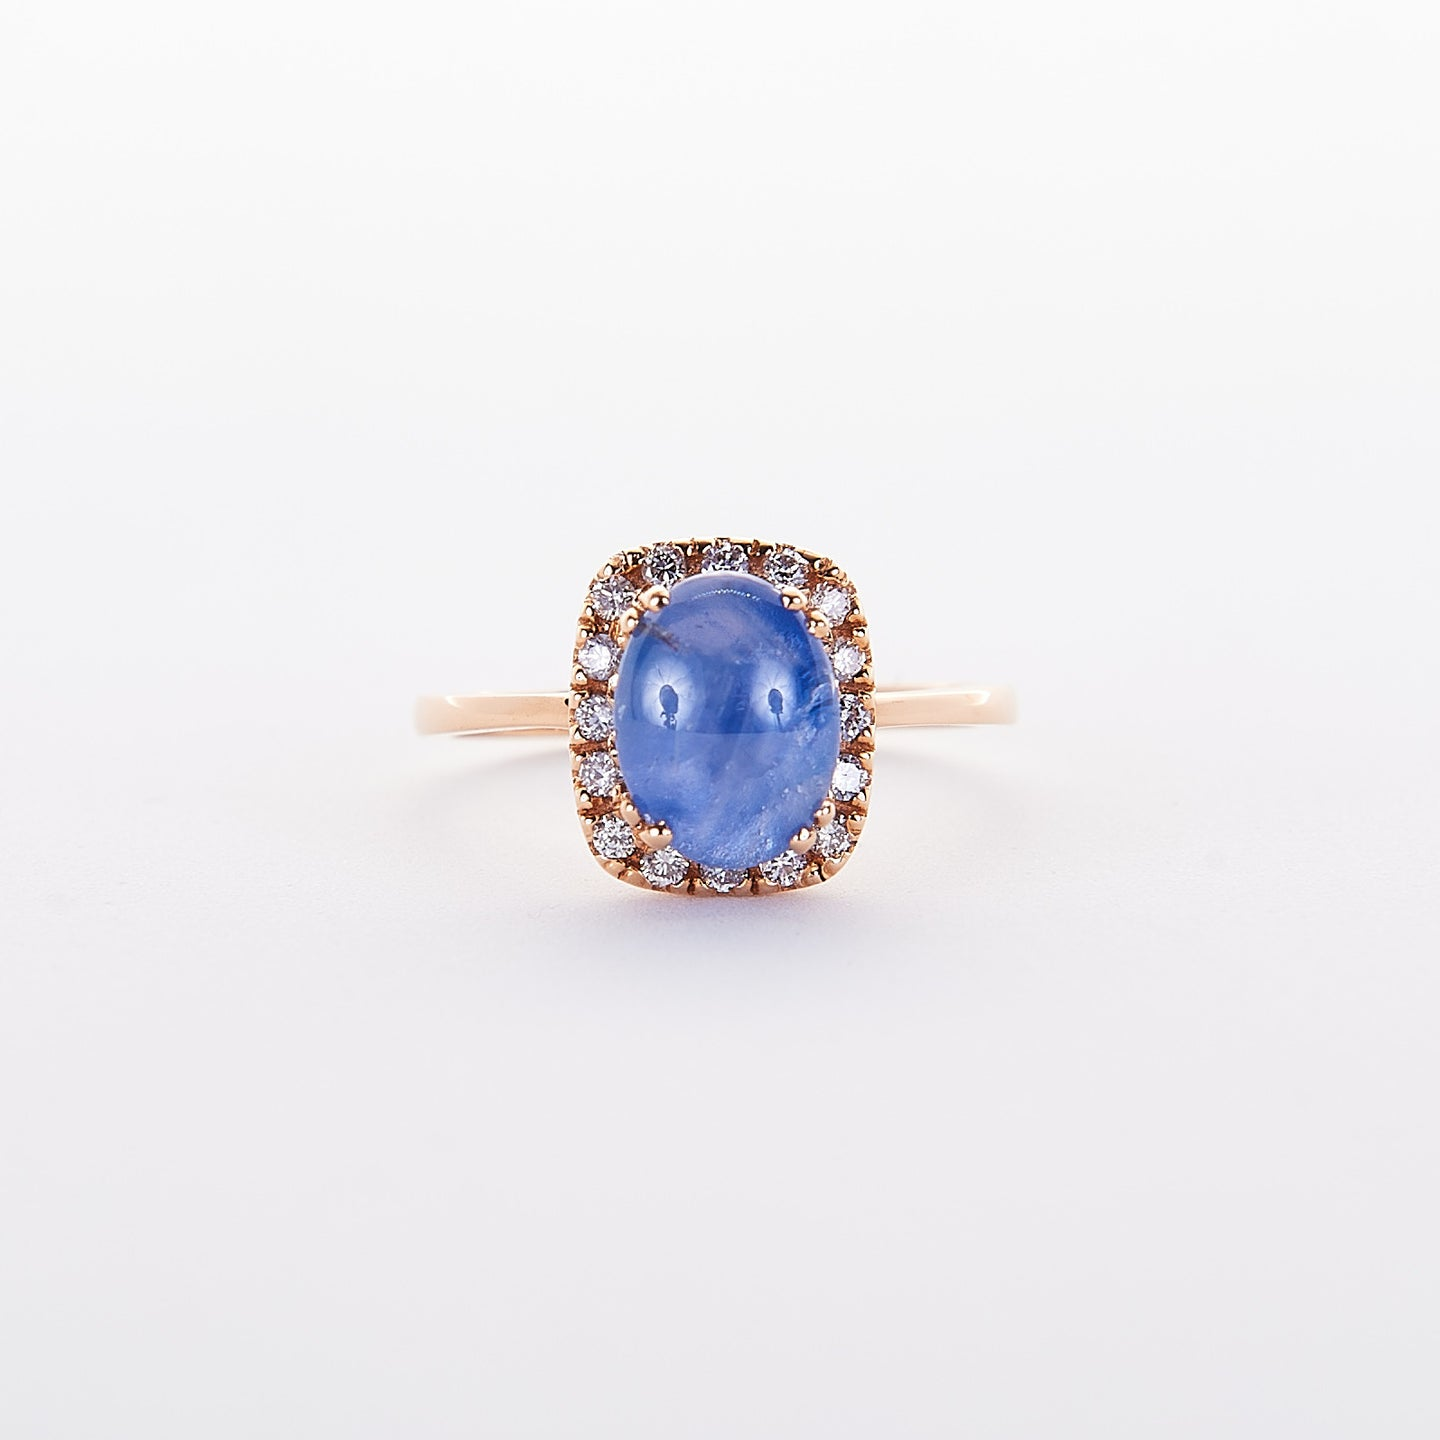 The Stormy - 18K Rose Gold Star Sapphire Ring